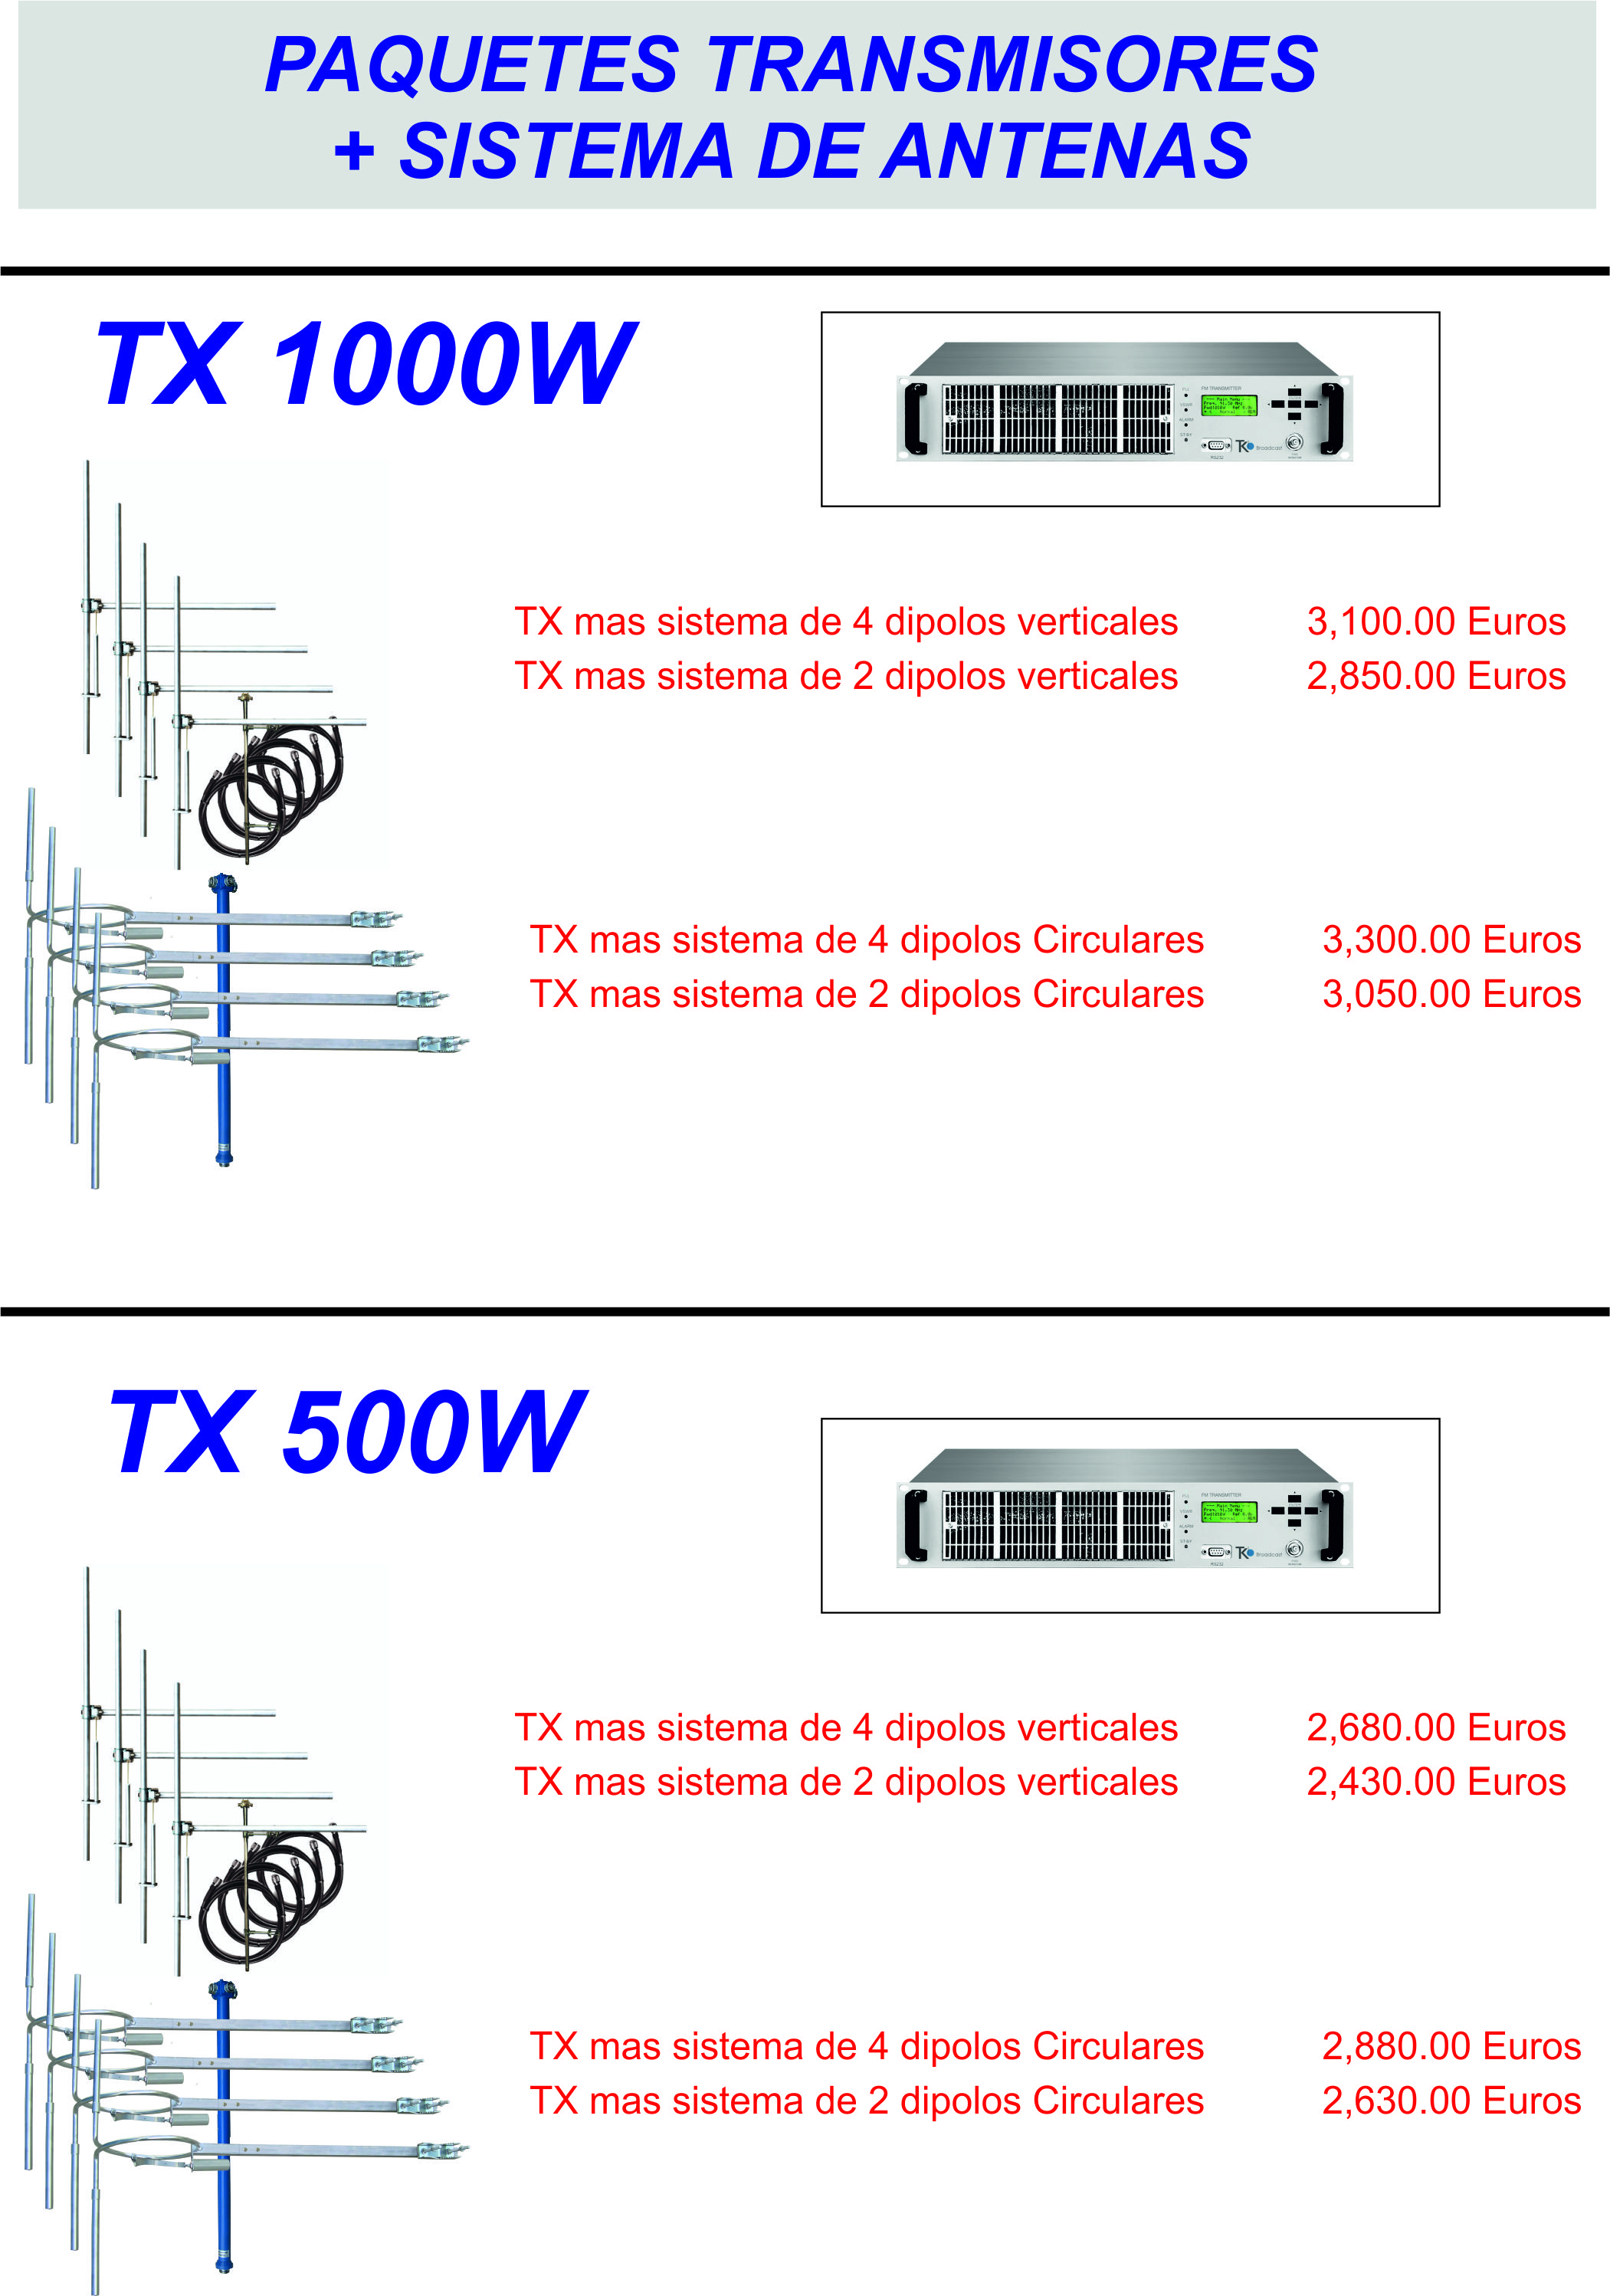 Transmision and antenna system deal